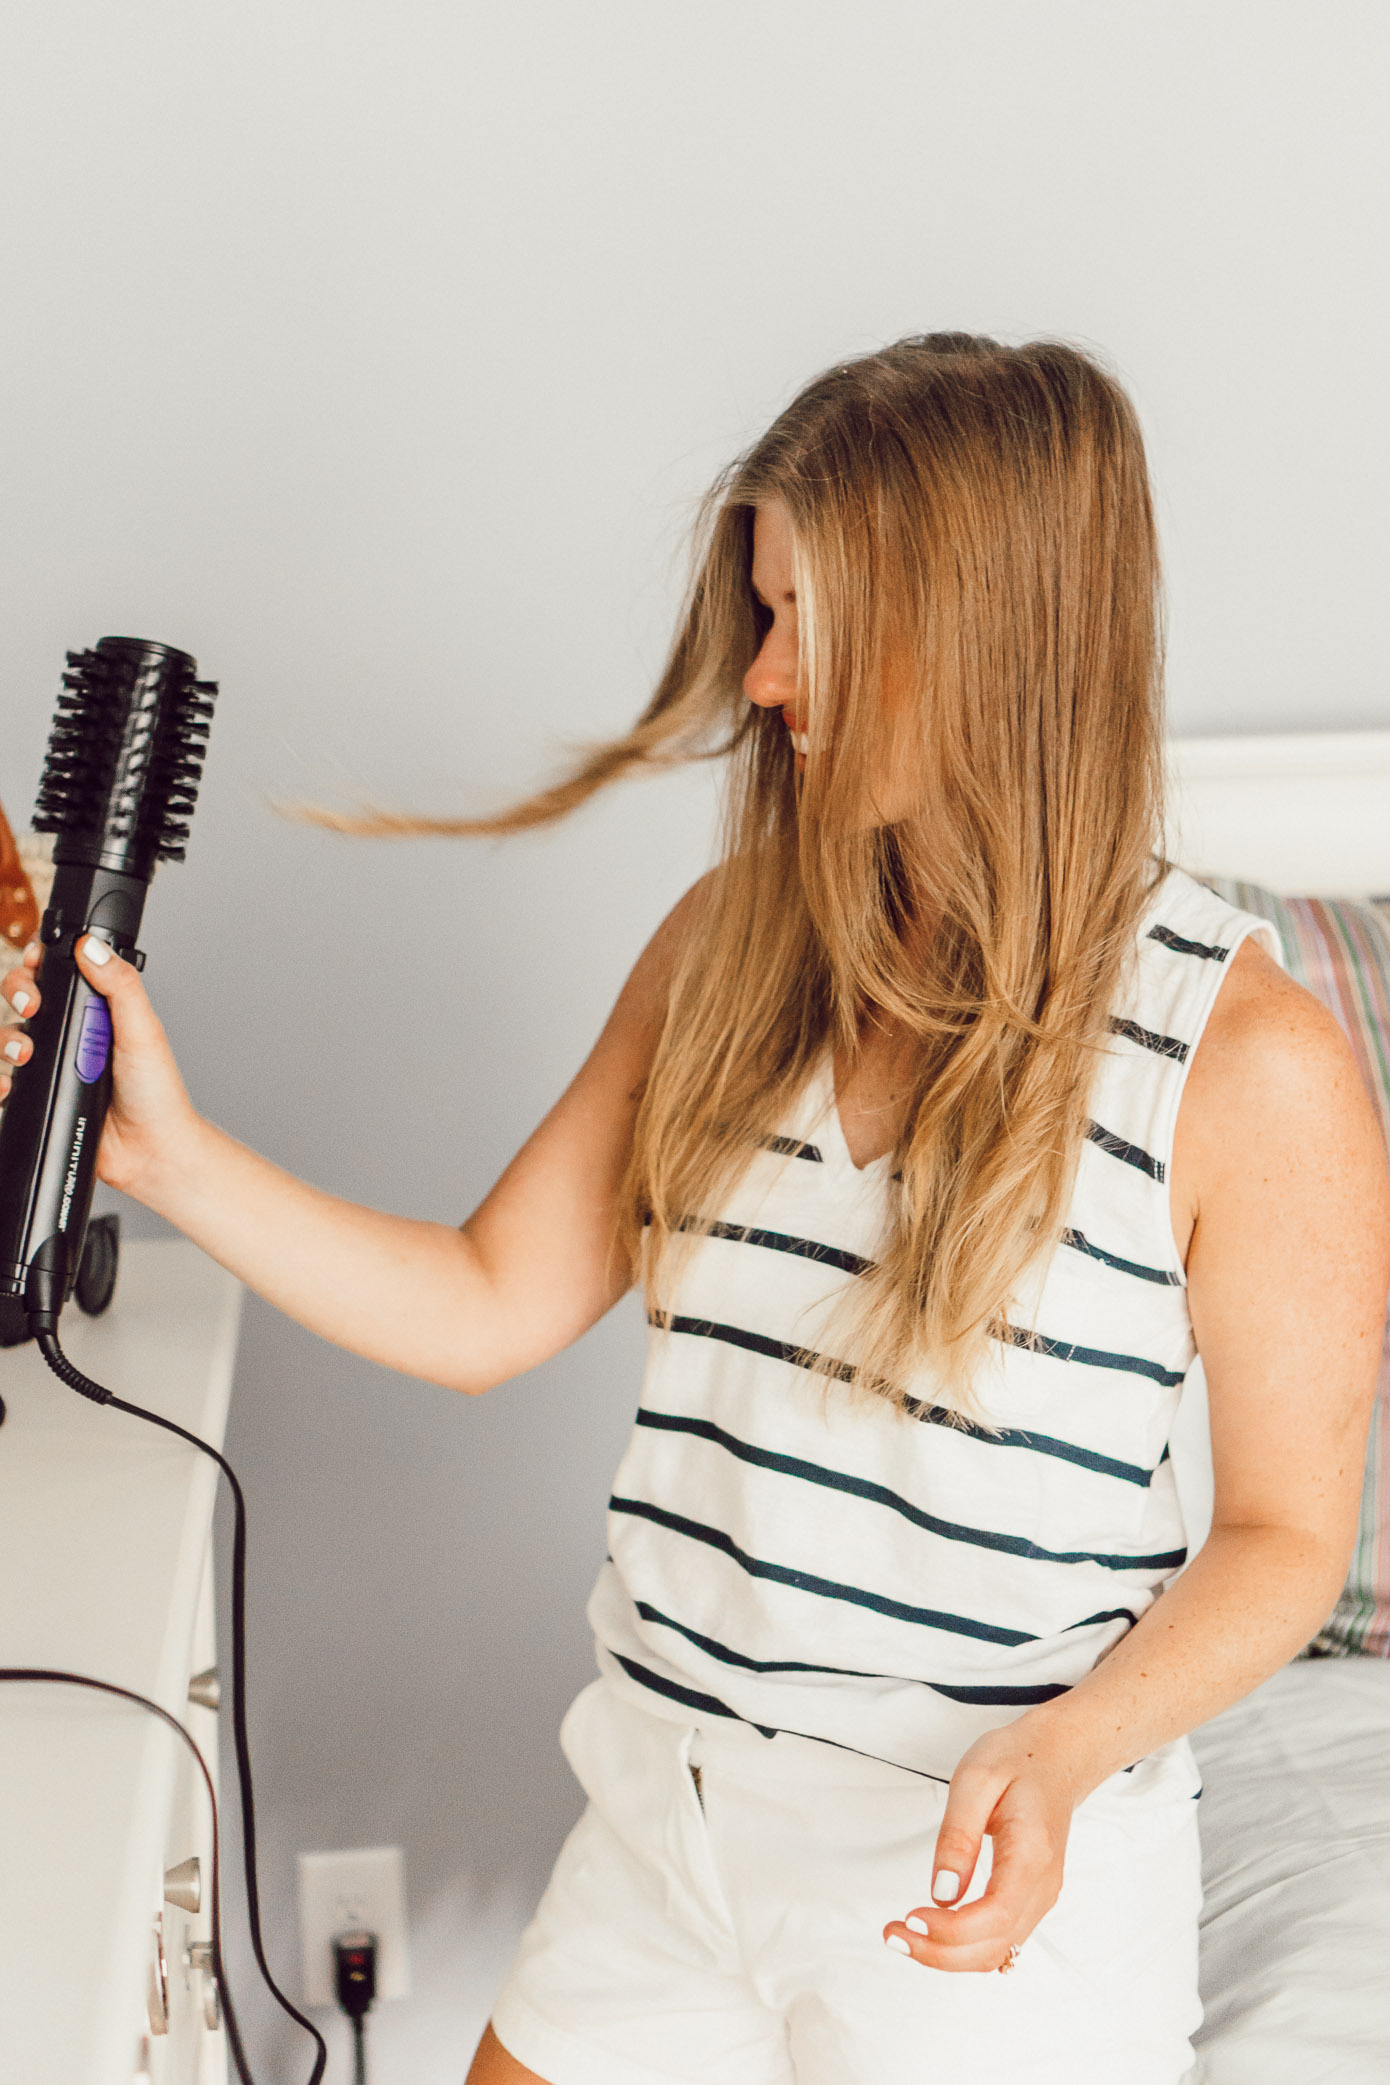 Two Summer Hairstyles with Conair   InfinitiPRO Spin Air Brush and InfinitiPRO Curl Secret 2.0   Easy Summer Hairstyles featured on Louella Reese